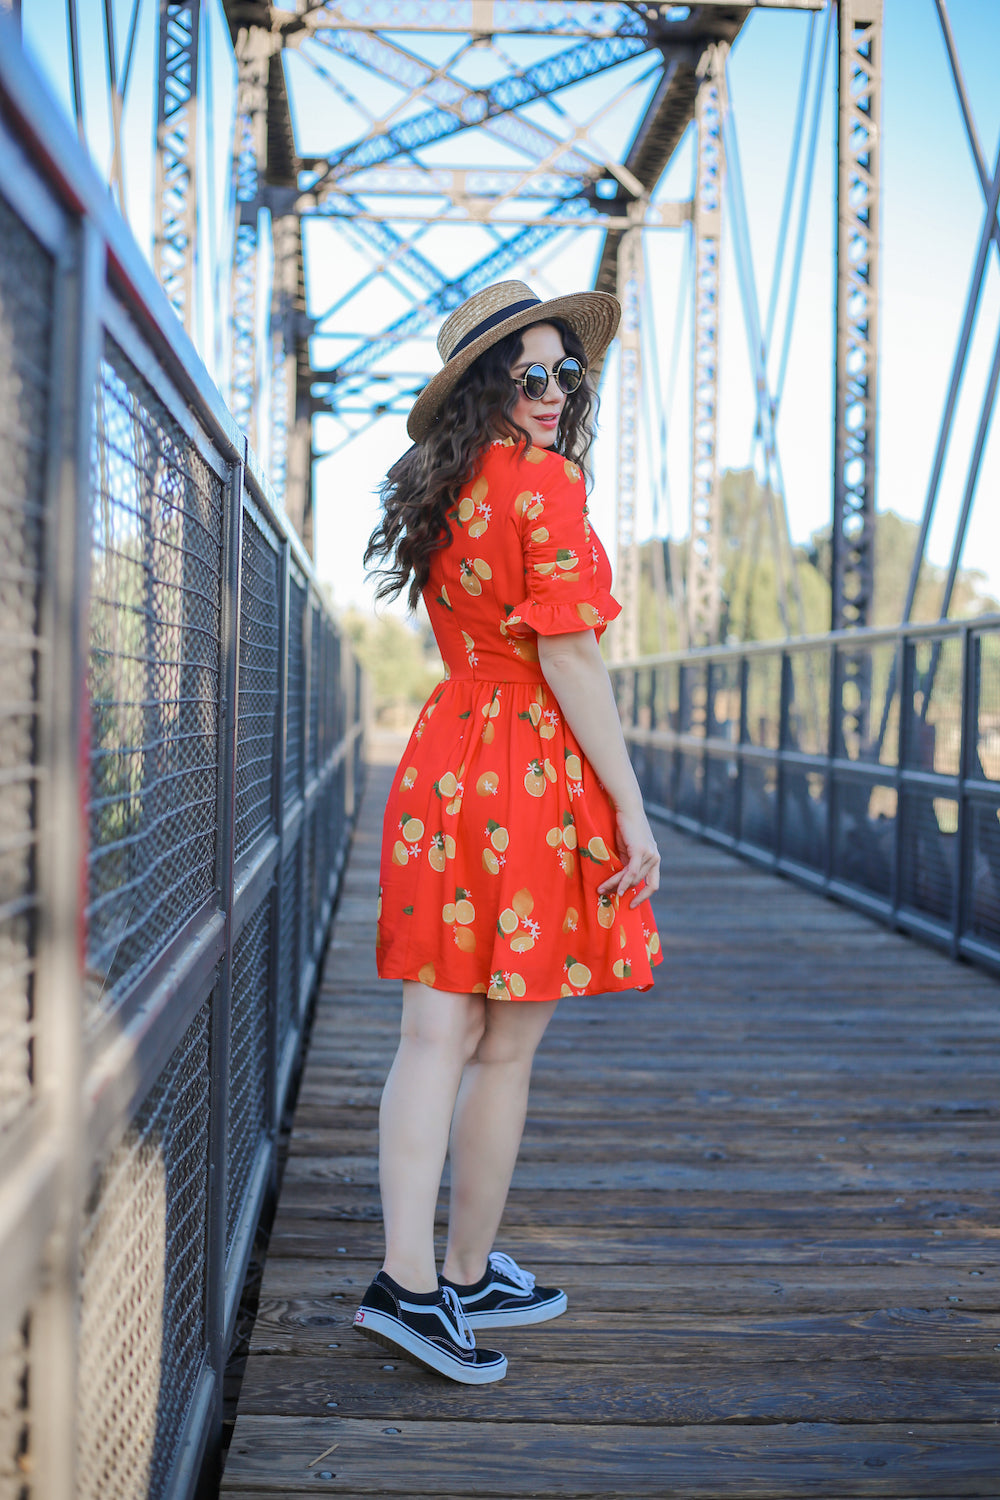 Media Darling Red Lemon Print Dress by Smak Parlour